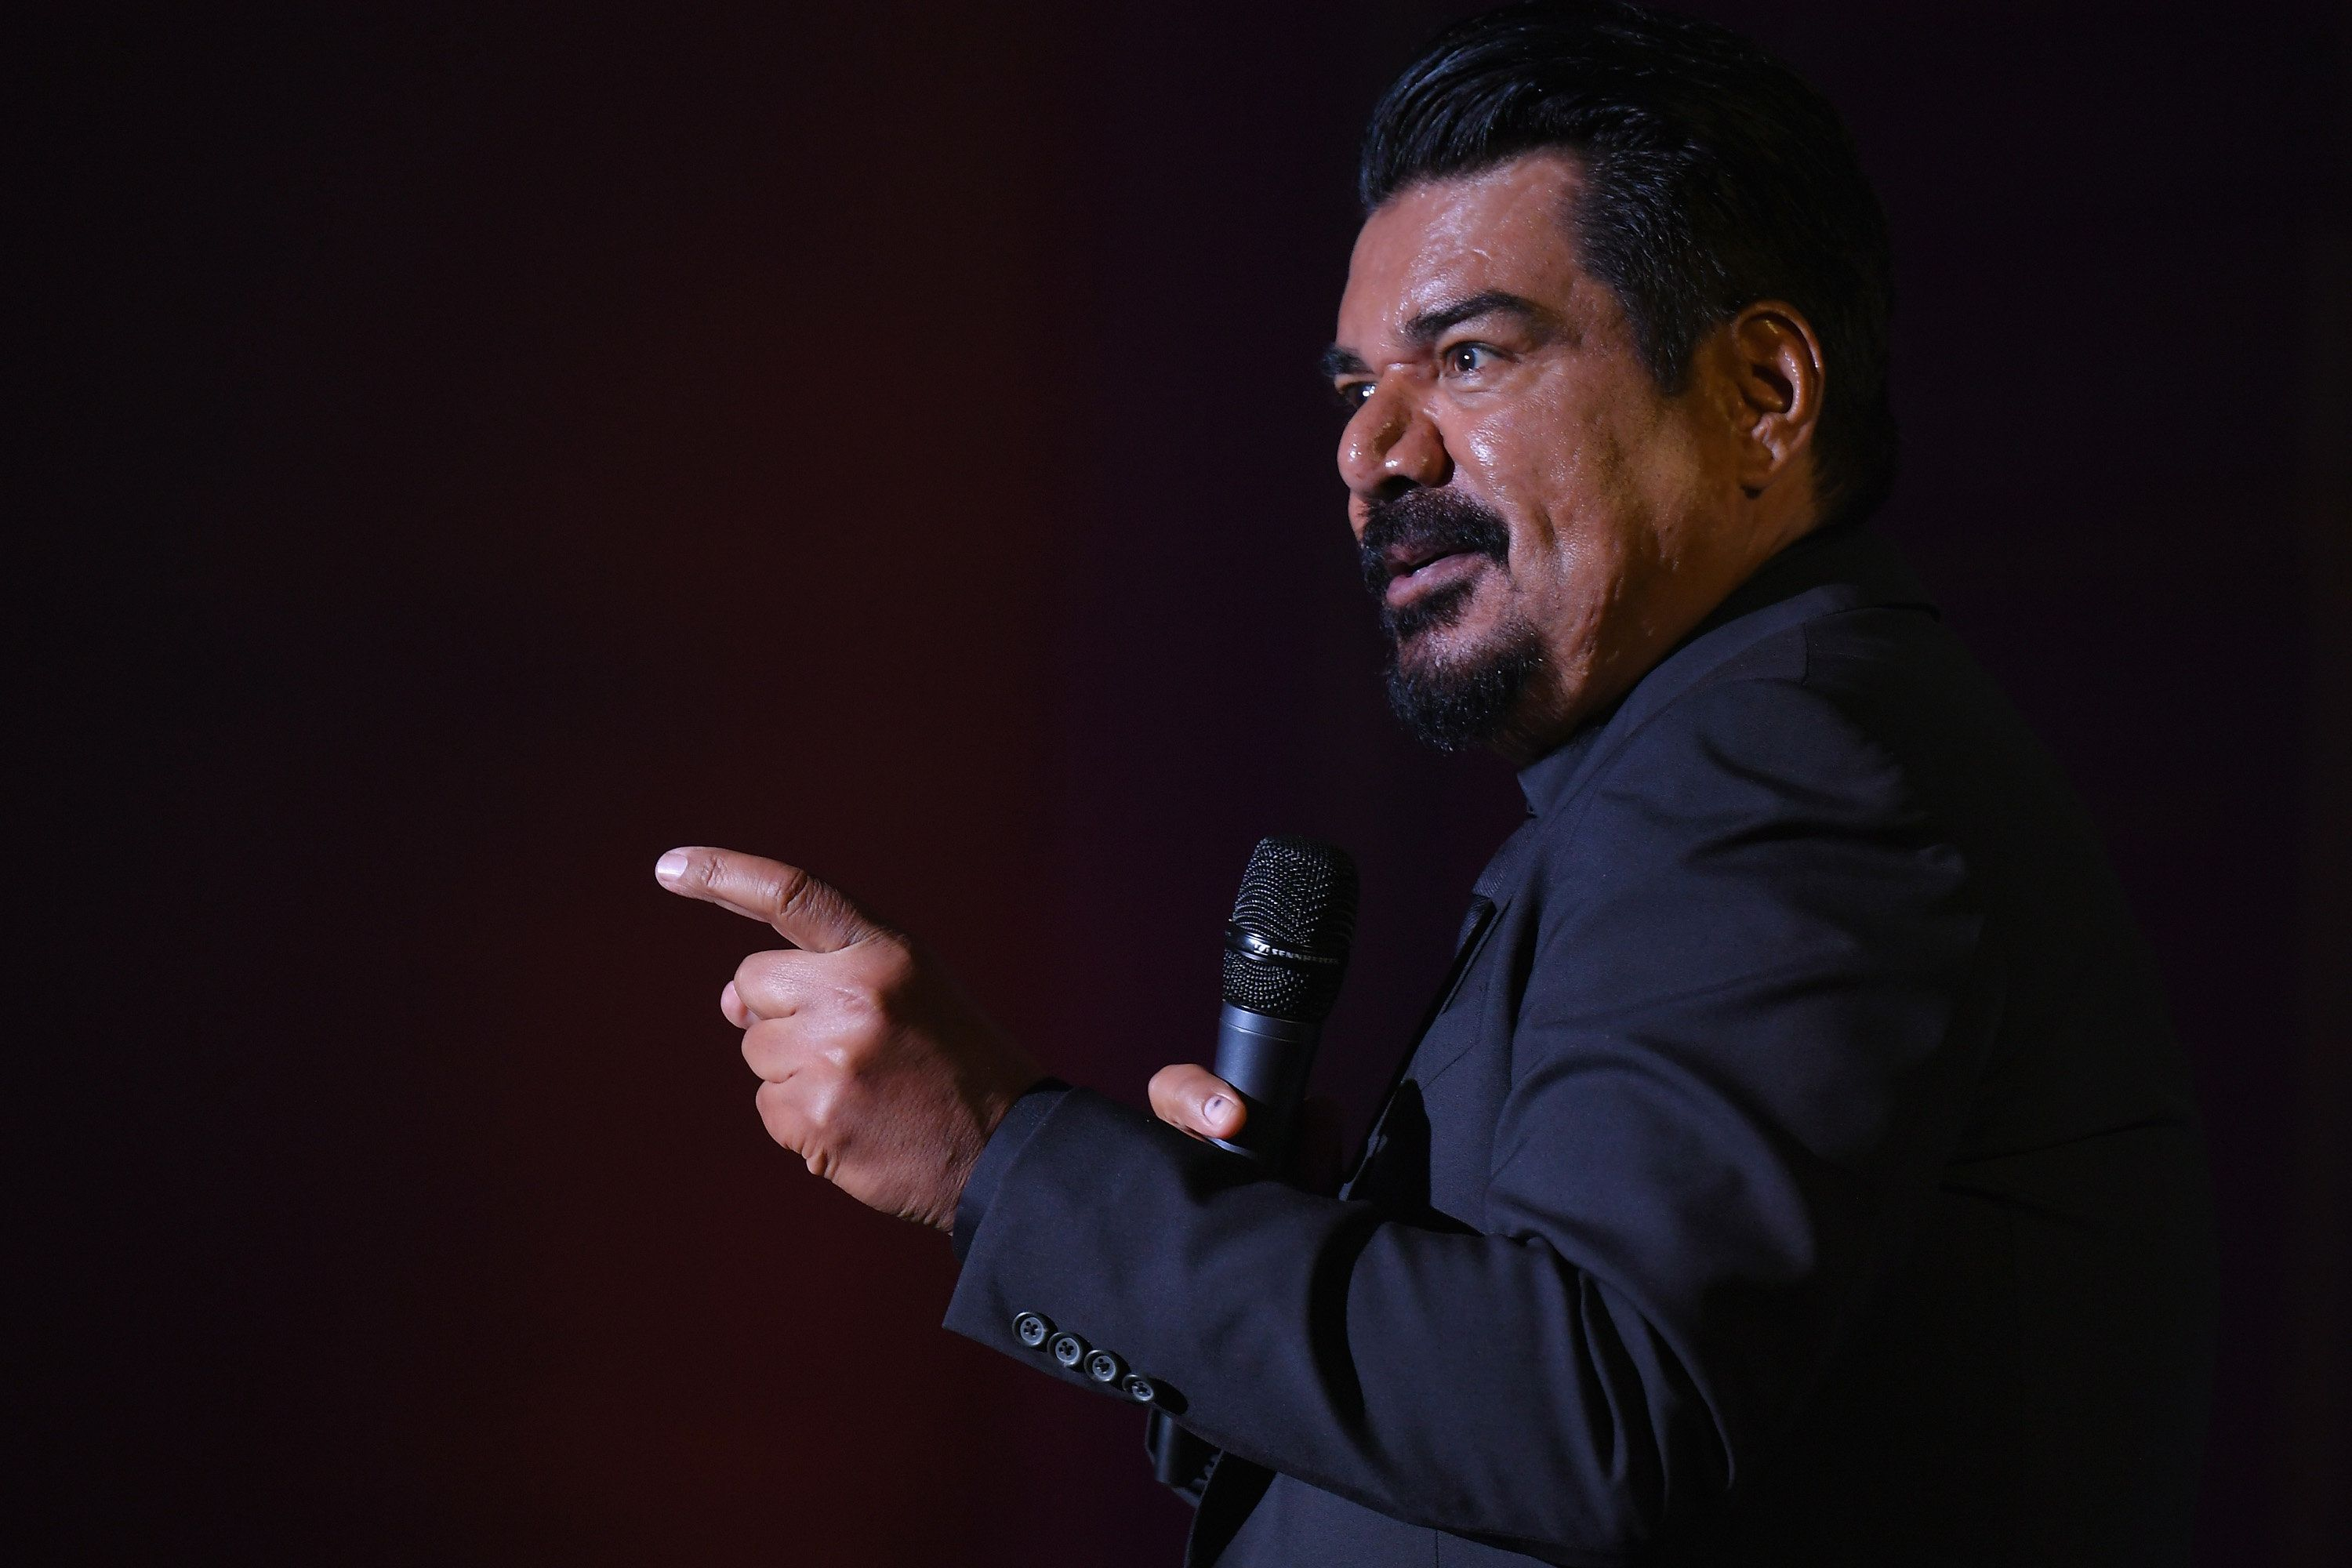 NEW YORK, NY - NOVEMBER 09:  Comedian George Lopez performs onstage during the Natural Resources Defense Council's 'NRDC's Night of Comedy' Benefit with Seth Meyers, John Oliver, George Lopez, Mike Birbiglia and Hasan Minhaj on November 9, 2016 in New York City.  (Photo by Mike Coppola/Getty Images for The Natural Resources Defense Council)